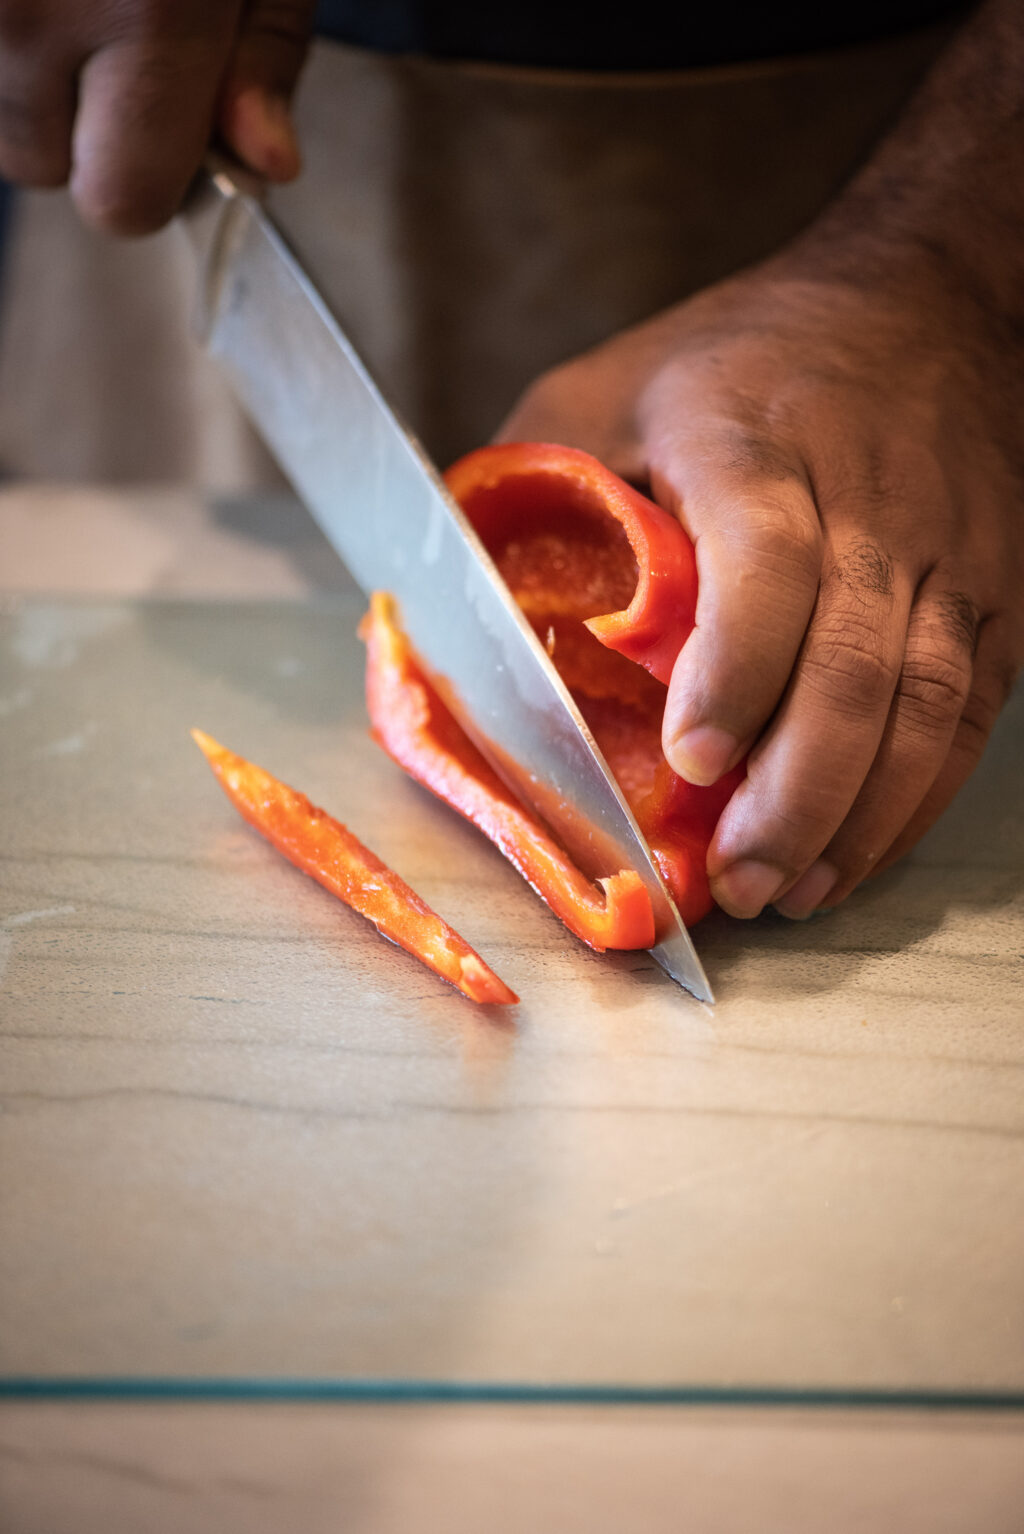 Slicing red bell peppers